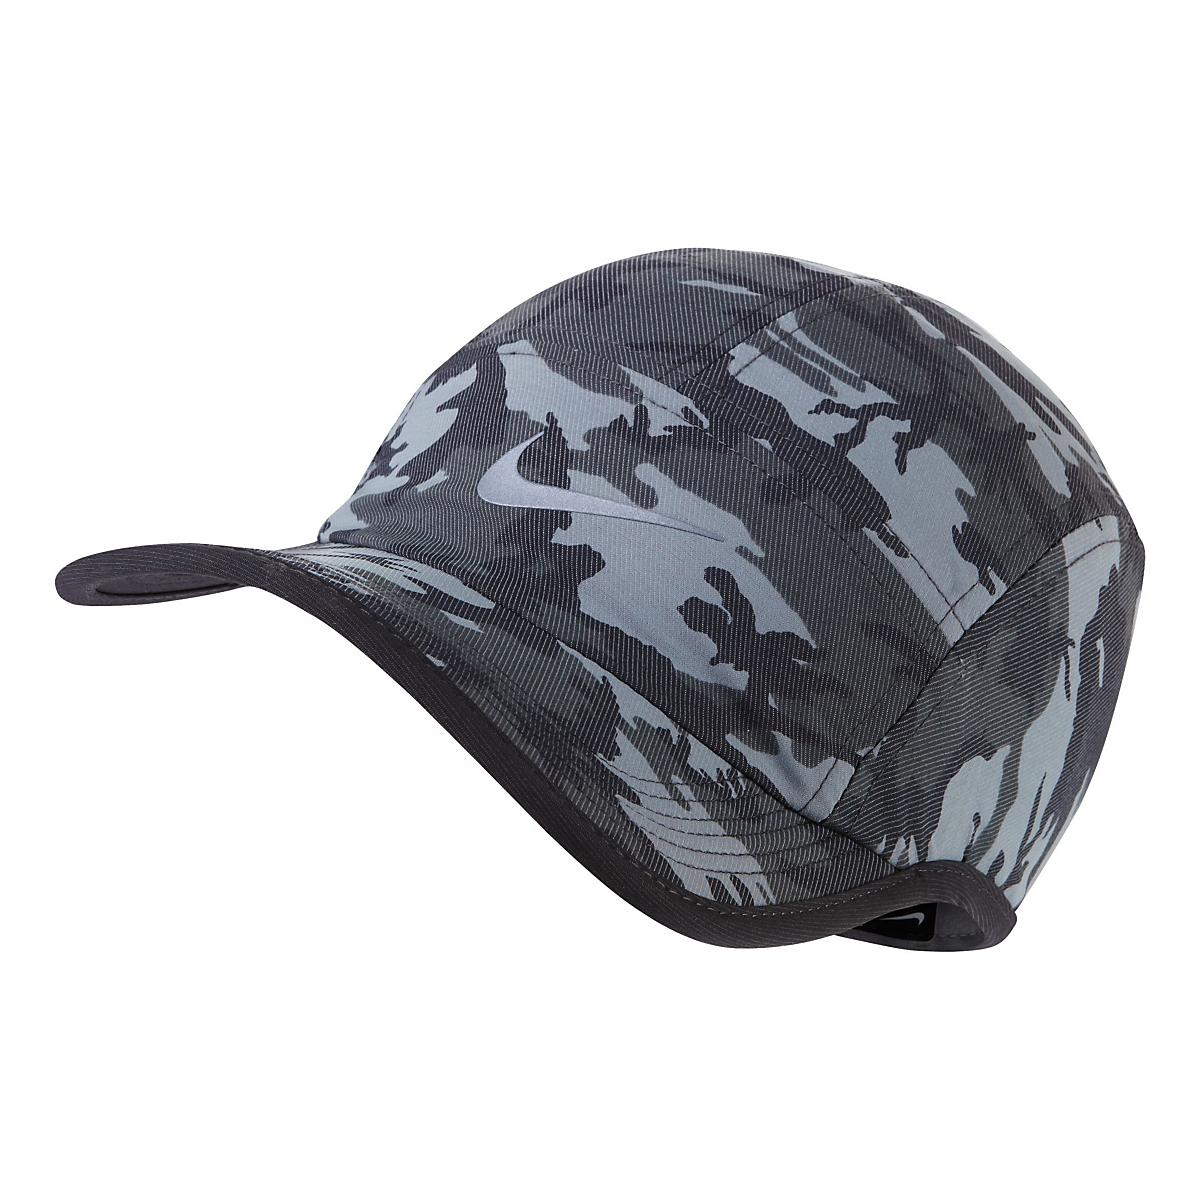 mens nike camo aw84 cap headwear at road runner sports. Black Bedroom Furniture Sets. Home Design Ideas